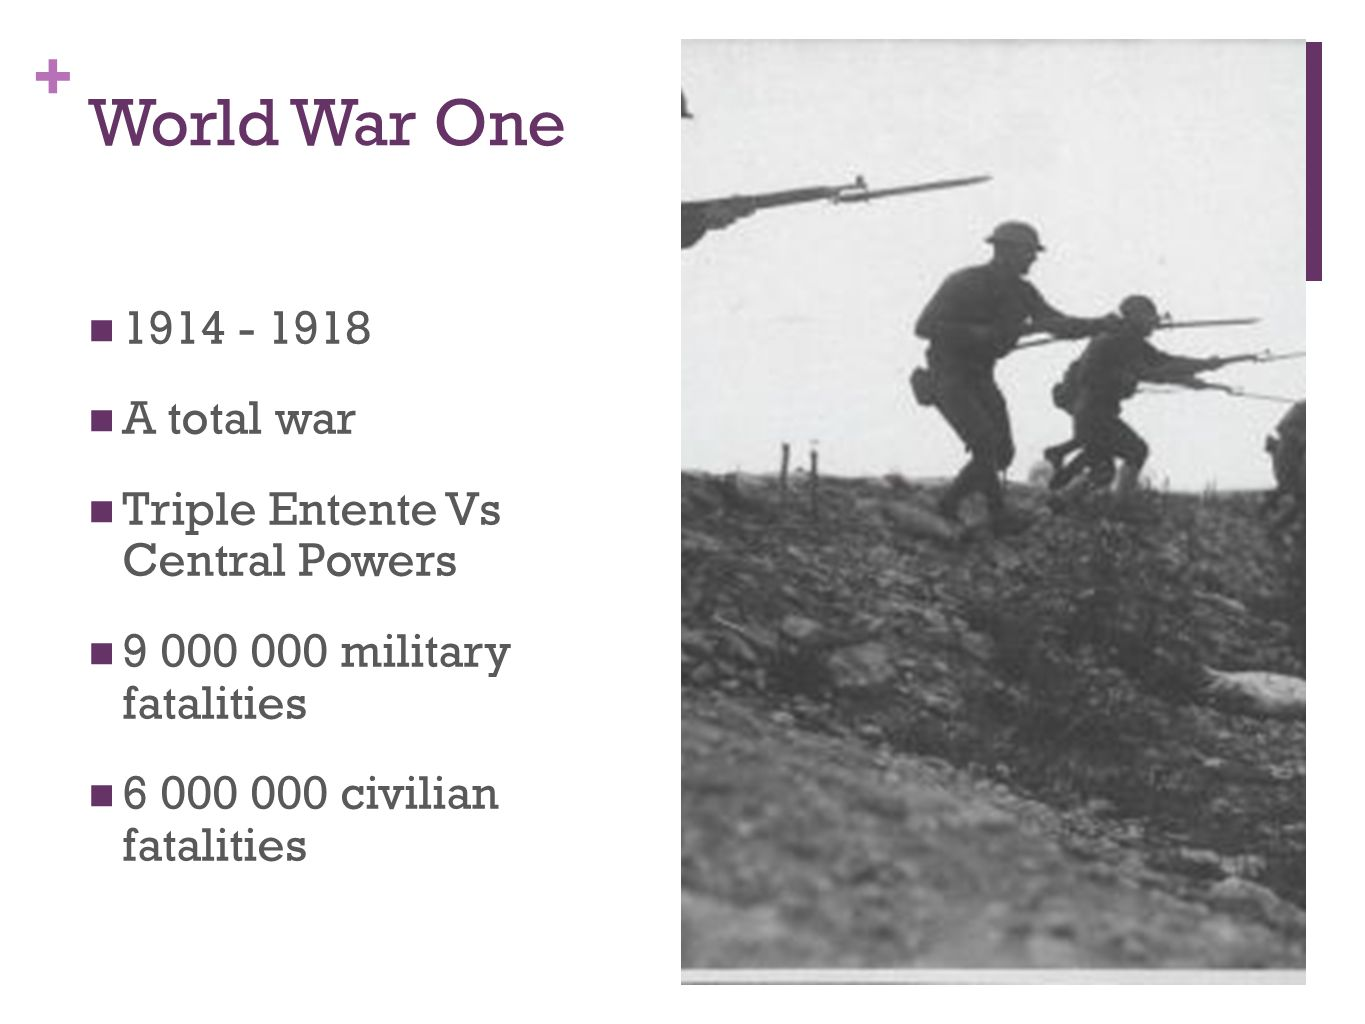 + World War One 1914 - 1918 A total war Triple Entente Vs Central Powers 9 000 000 military fatalities 6 000 000 civilian fatalities